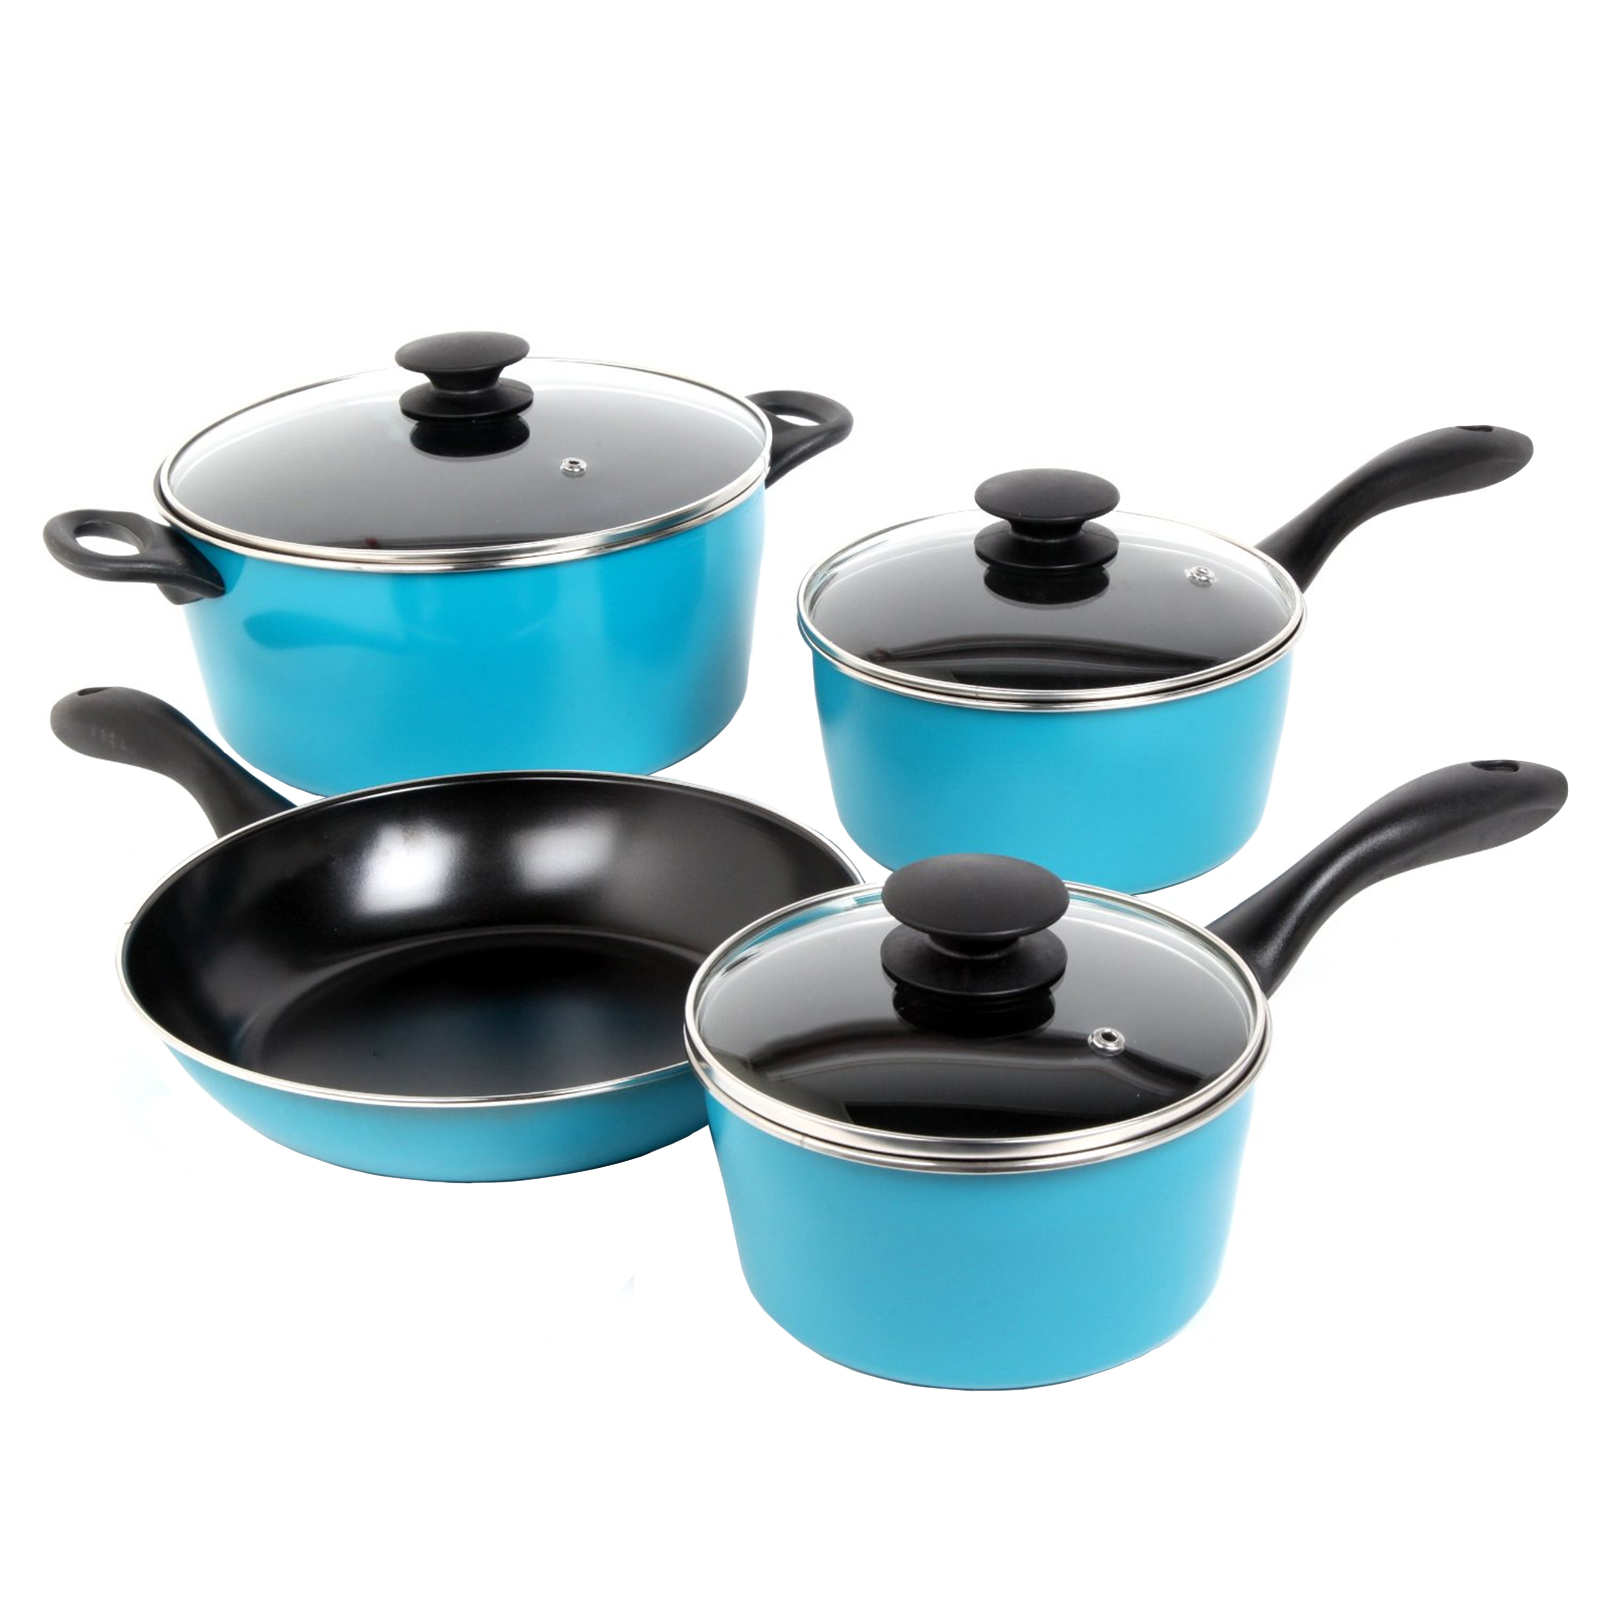 Sunbeam Armington 7-Piece Cookware Set, Teal